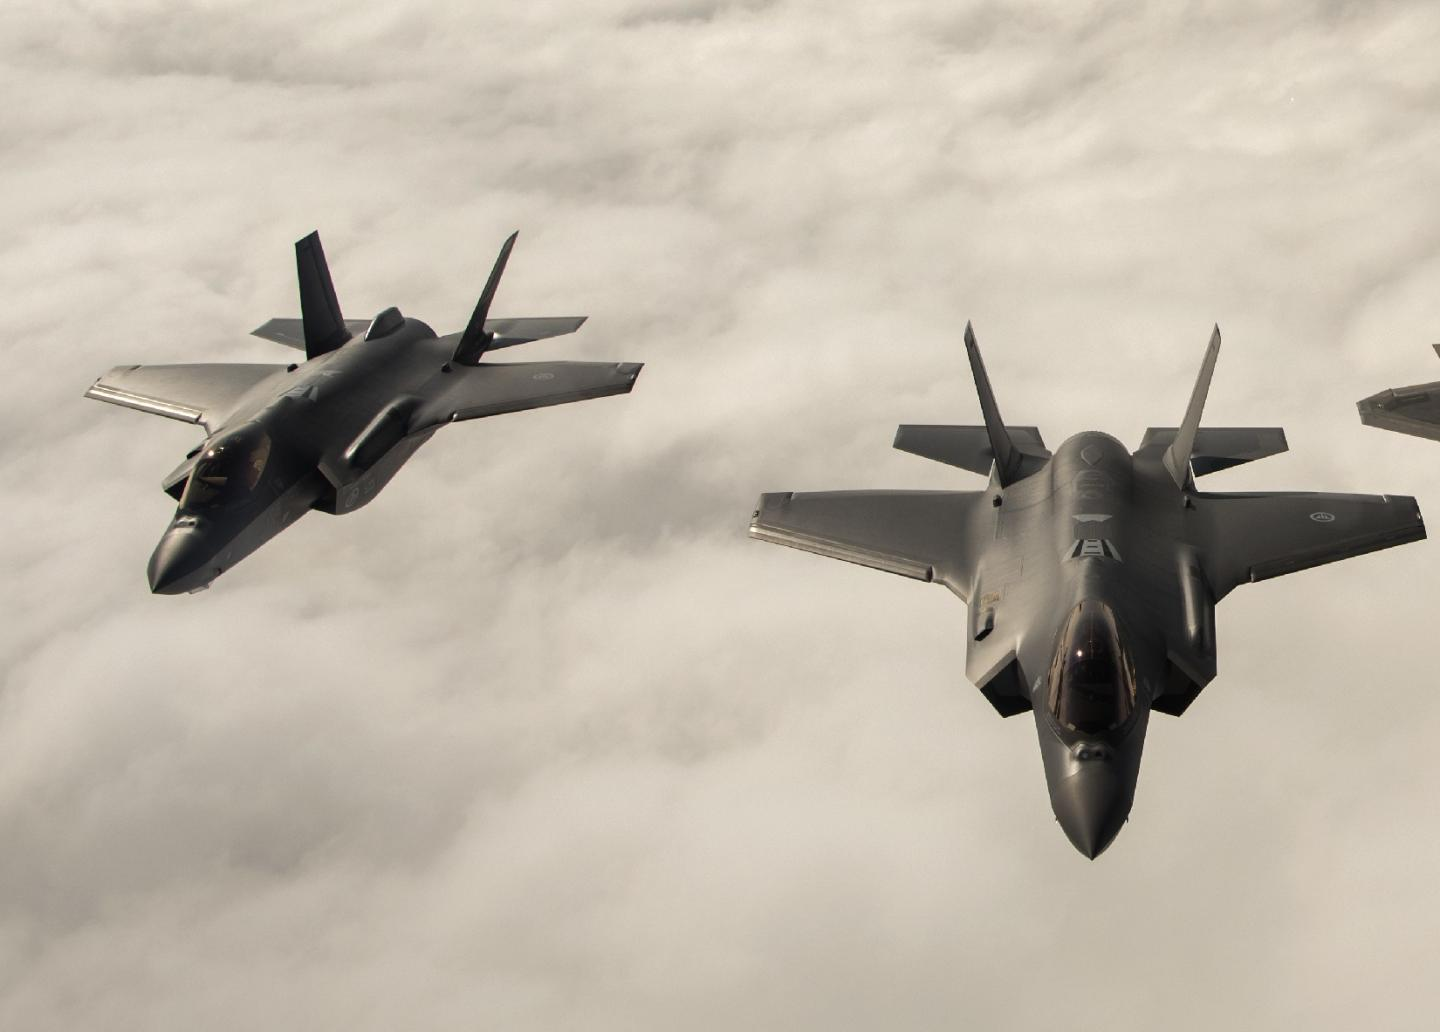 F-22s vs. F-35s: Who Wins When the 2 Deadliest Stealth Fighters Fight?